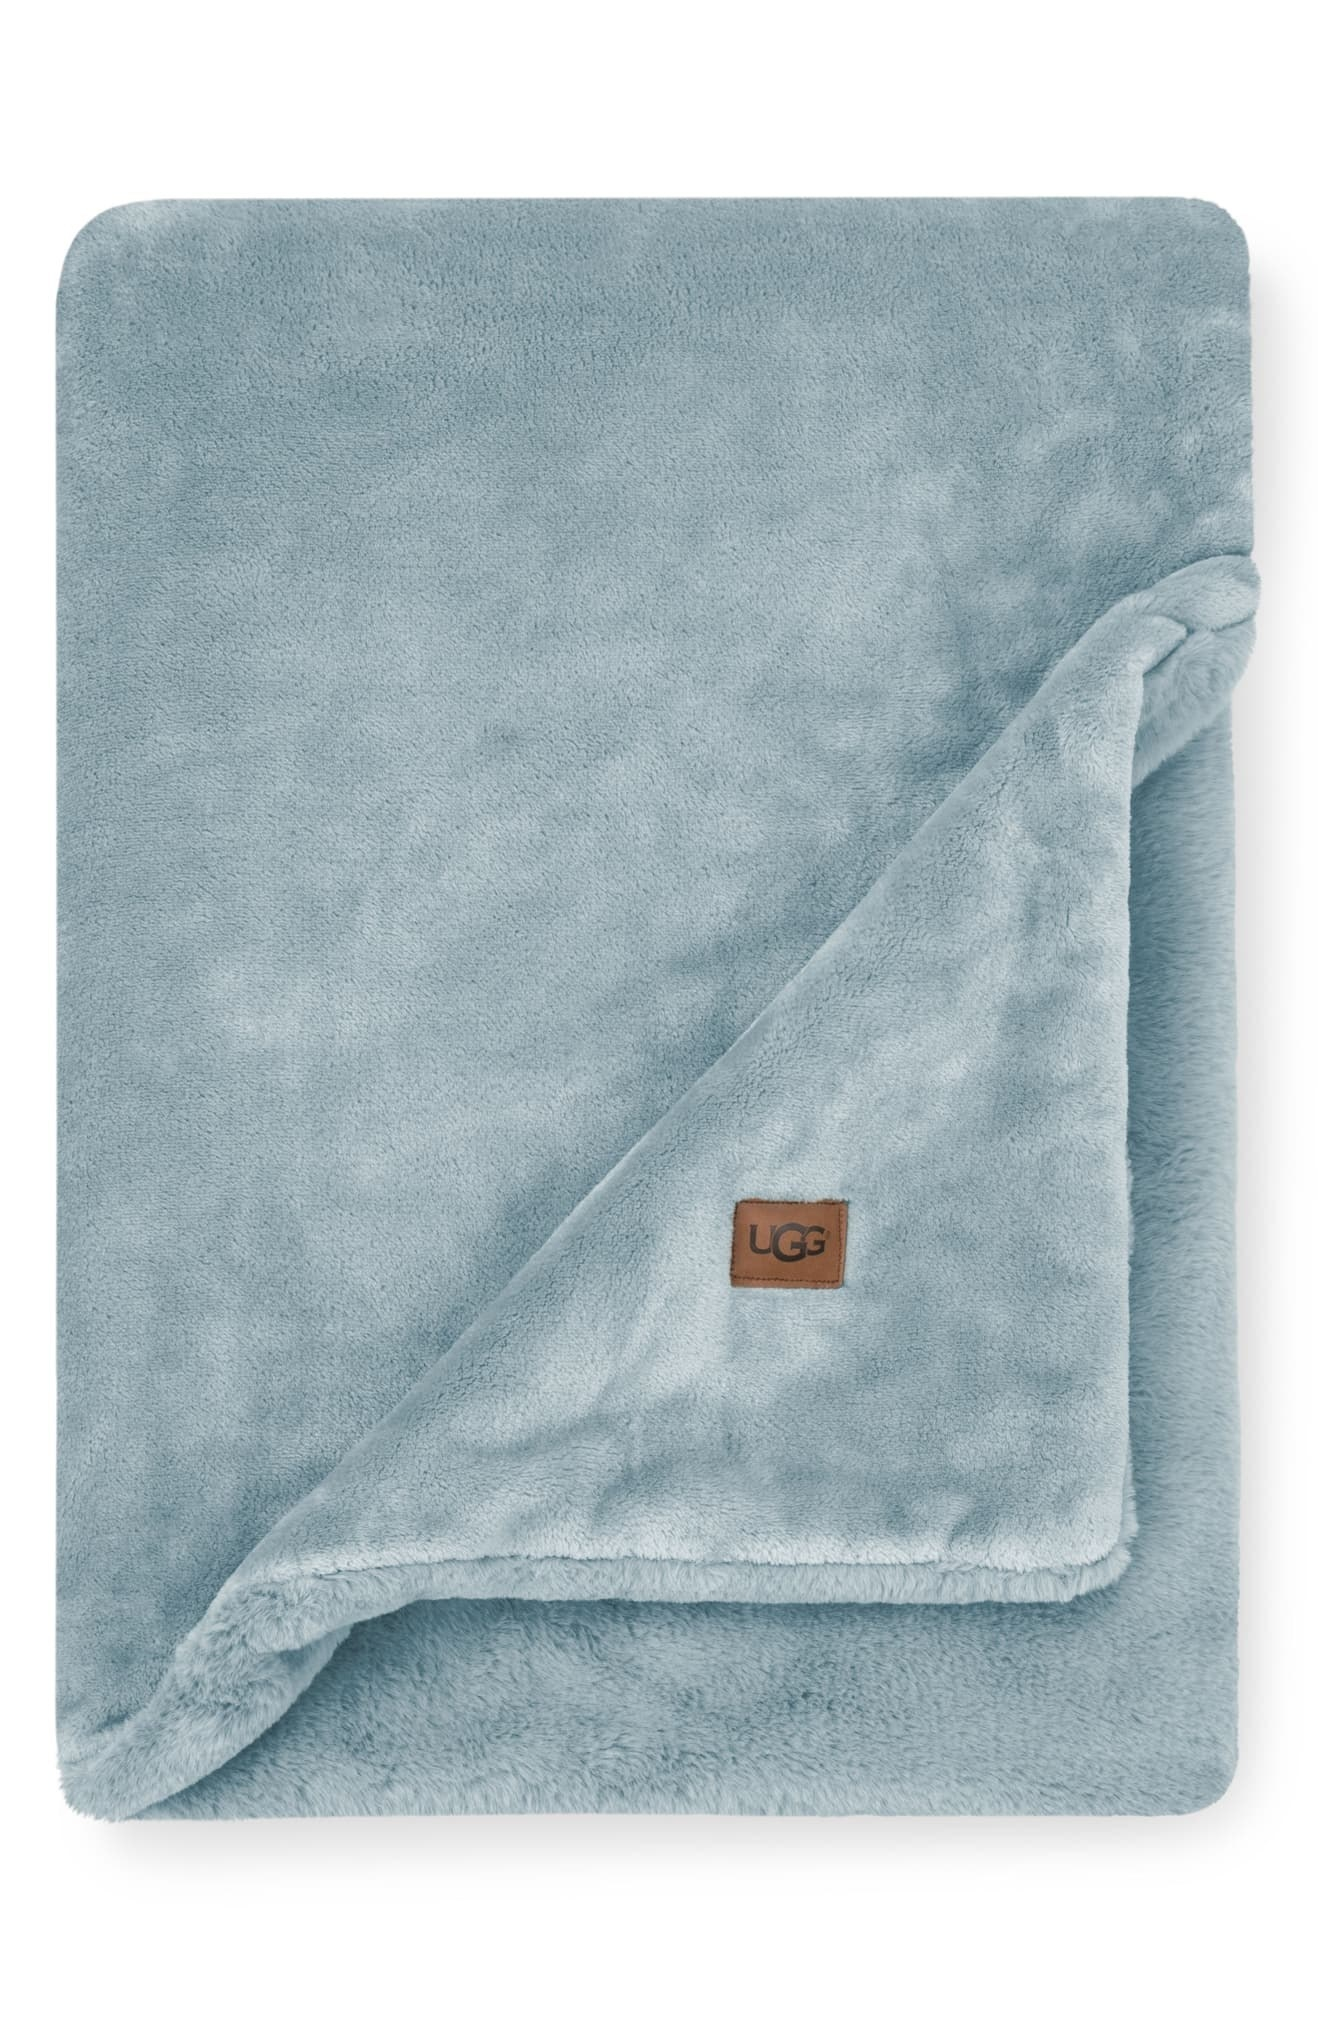 The fleece blanket in light blue